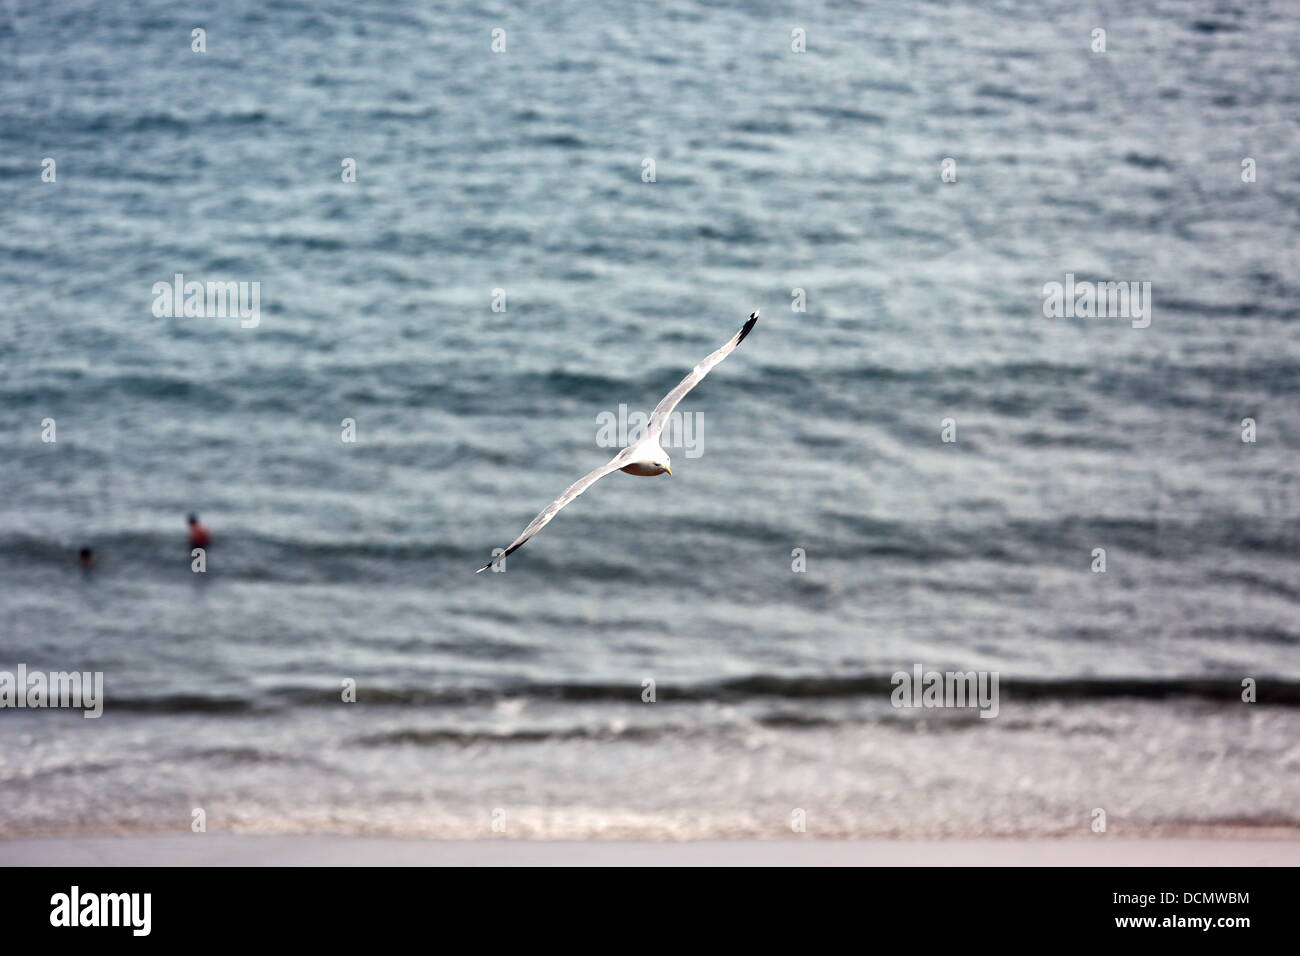 Tenby UK, Monday 19 August 2013  A seagull over the North Beach in Tenby Pembrokeshire.  Re: Seagulls displaying - Stock Image